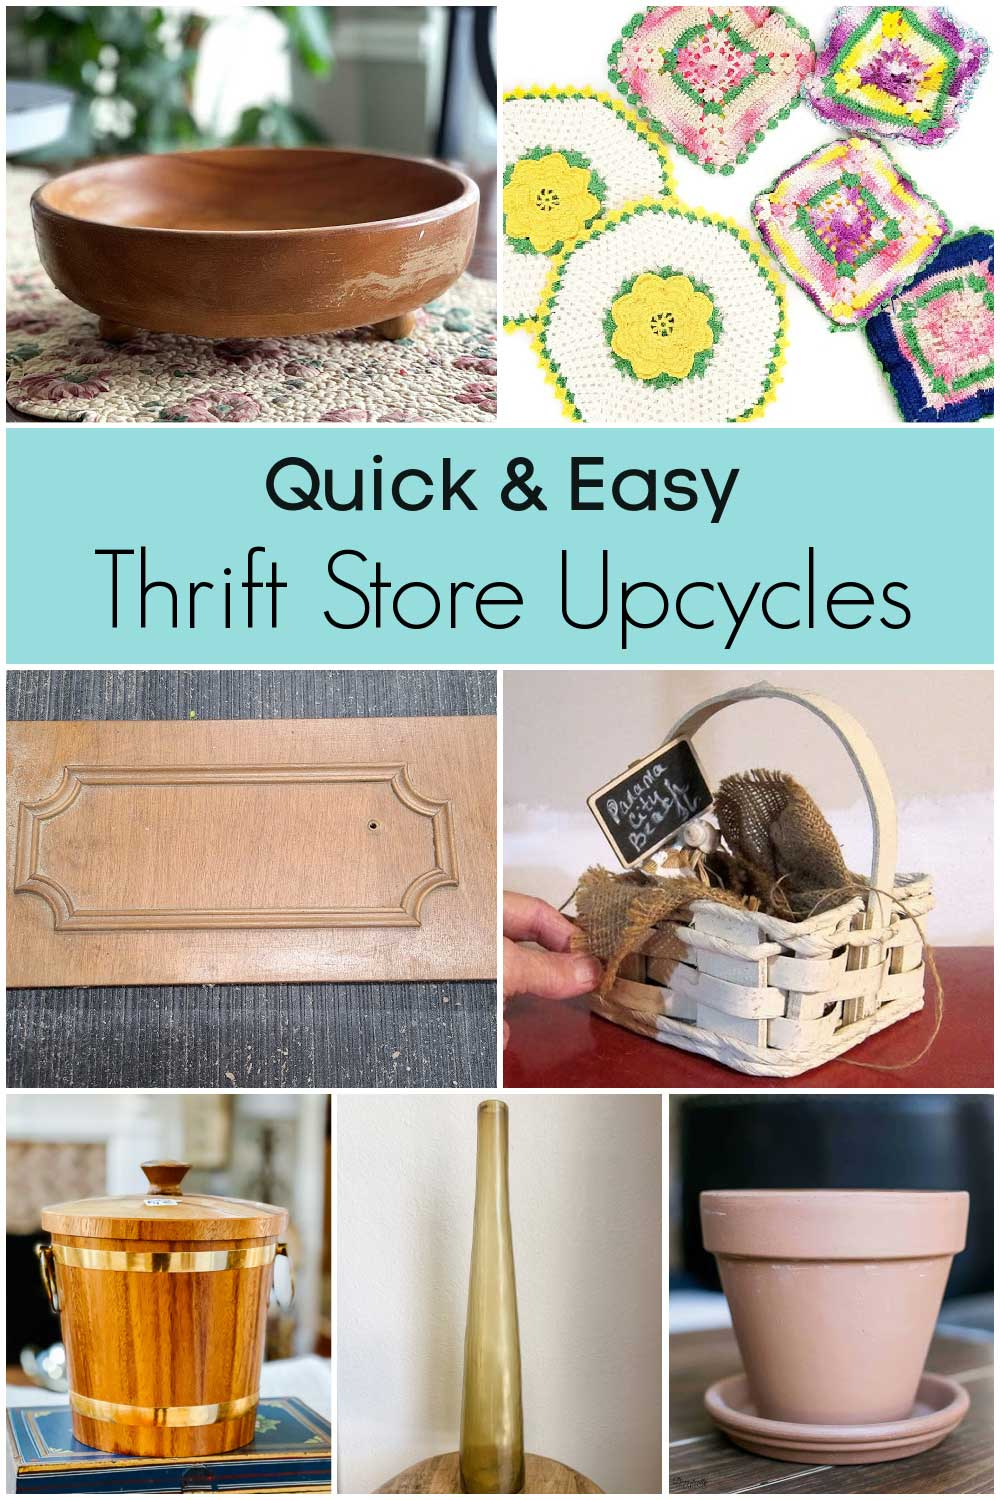 Items from the thrift store to upcycle for home decor